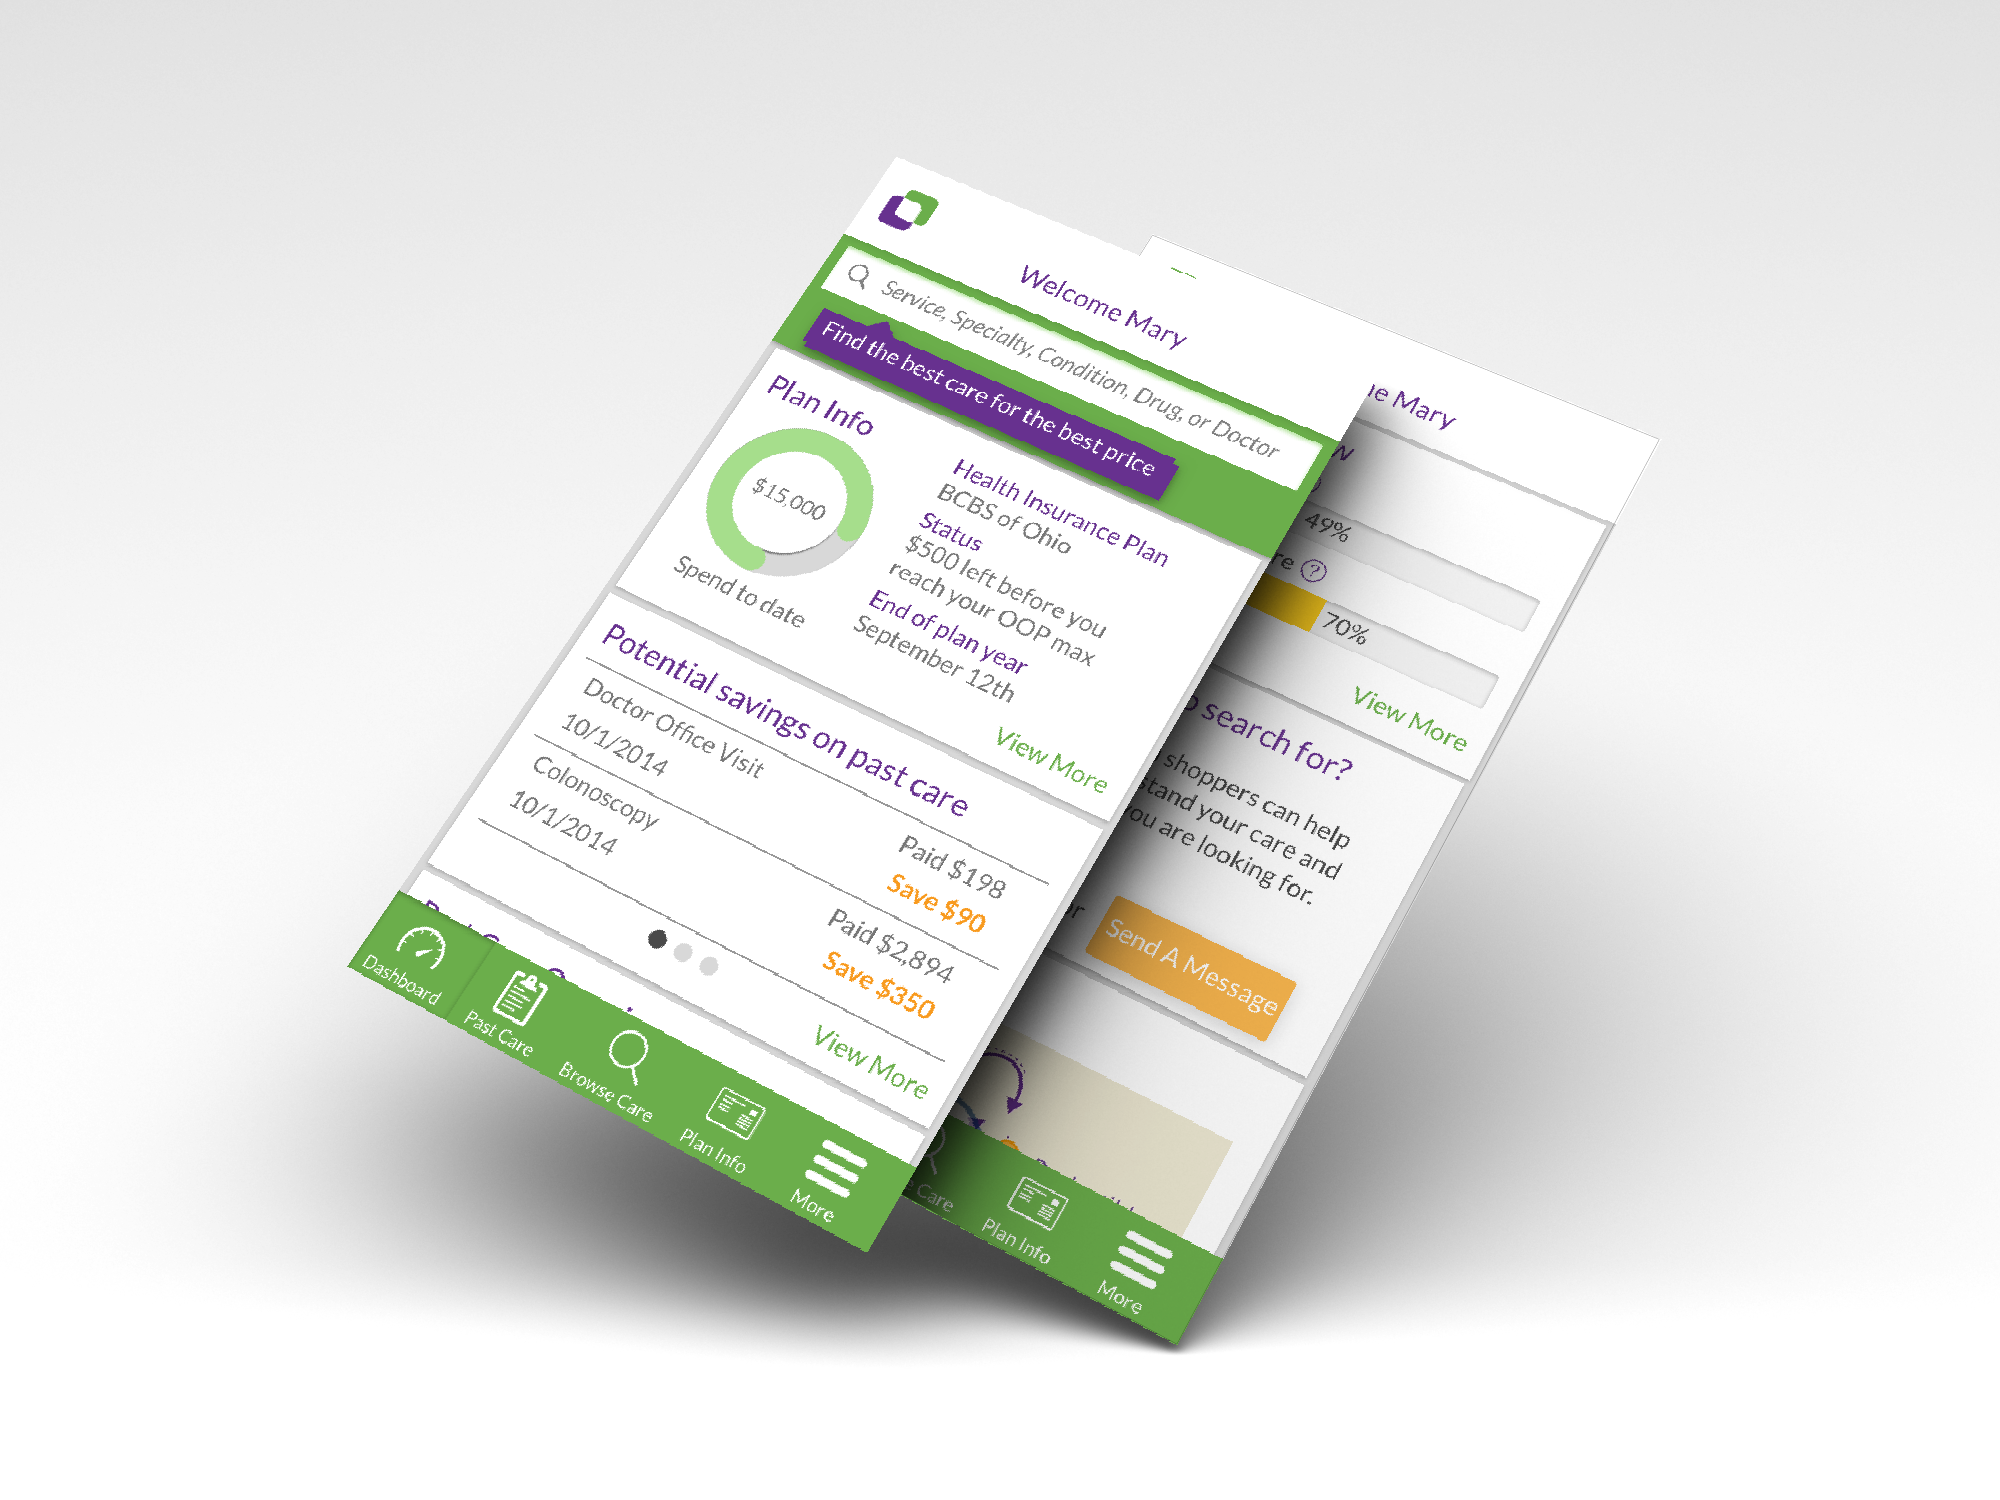 The product dashboard provides easy access to the most used features of the product